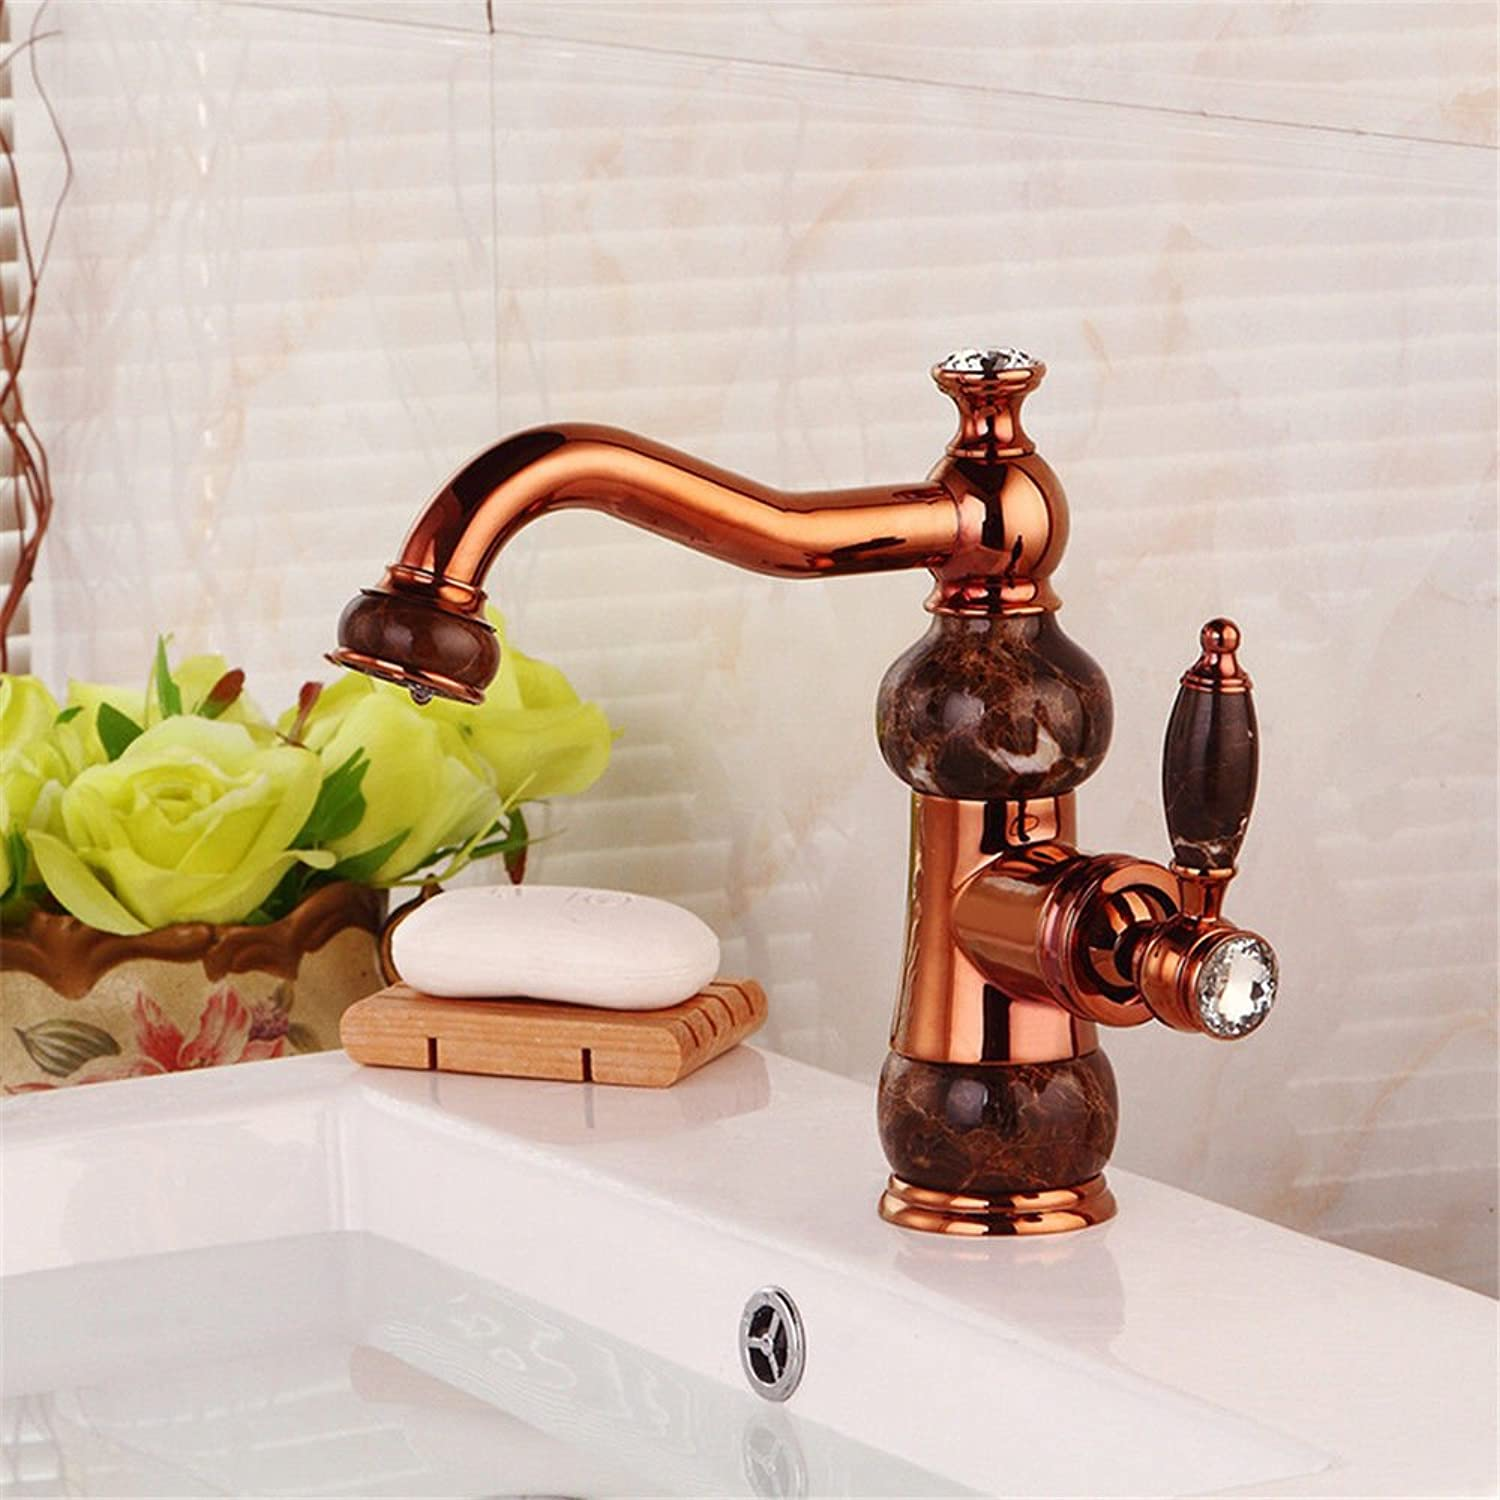 ETERNAL QUALITY Bathroom Sink Basin Tap Brass Mixer Tap Washroom Mixer Faucet The rise in the basins cleaned up Kai-basin water faucet full copper fittings Kitchen Sink Taps